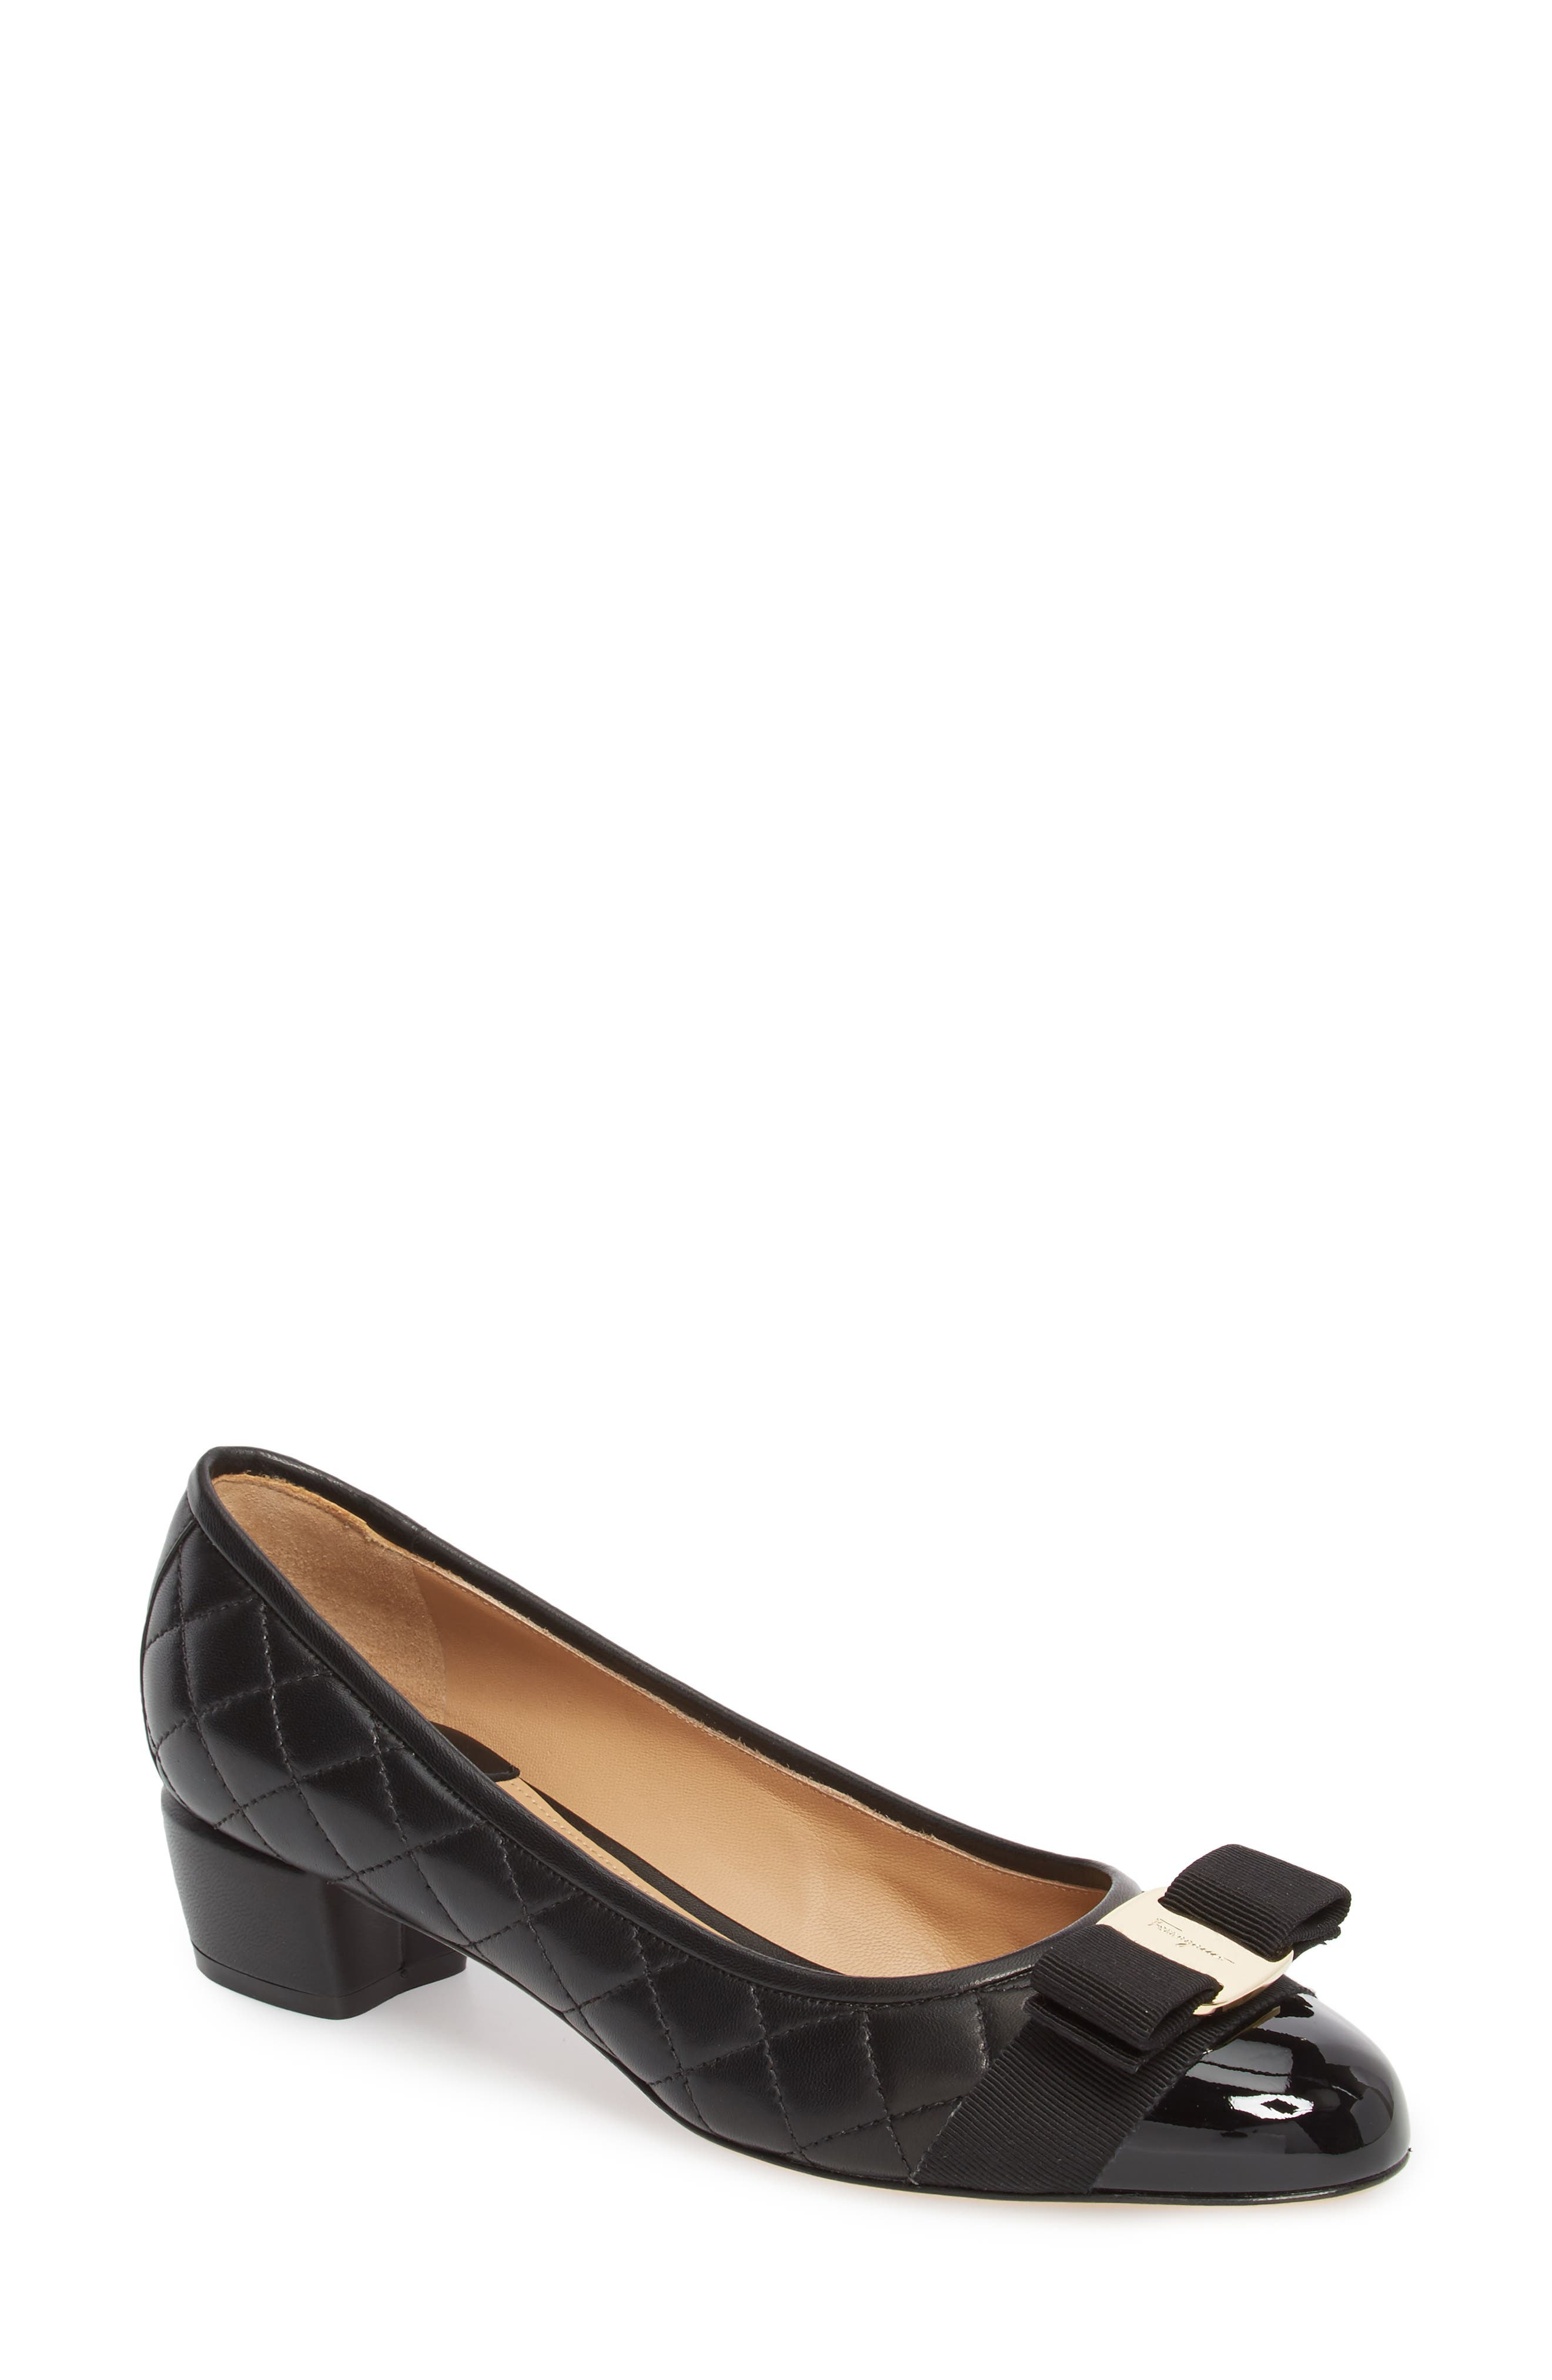 Alternate Image 1 Selected - Salvatore Ferragamo Vara Pump (Women)